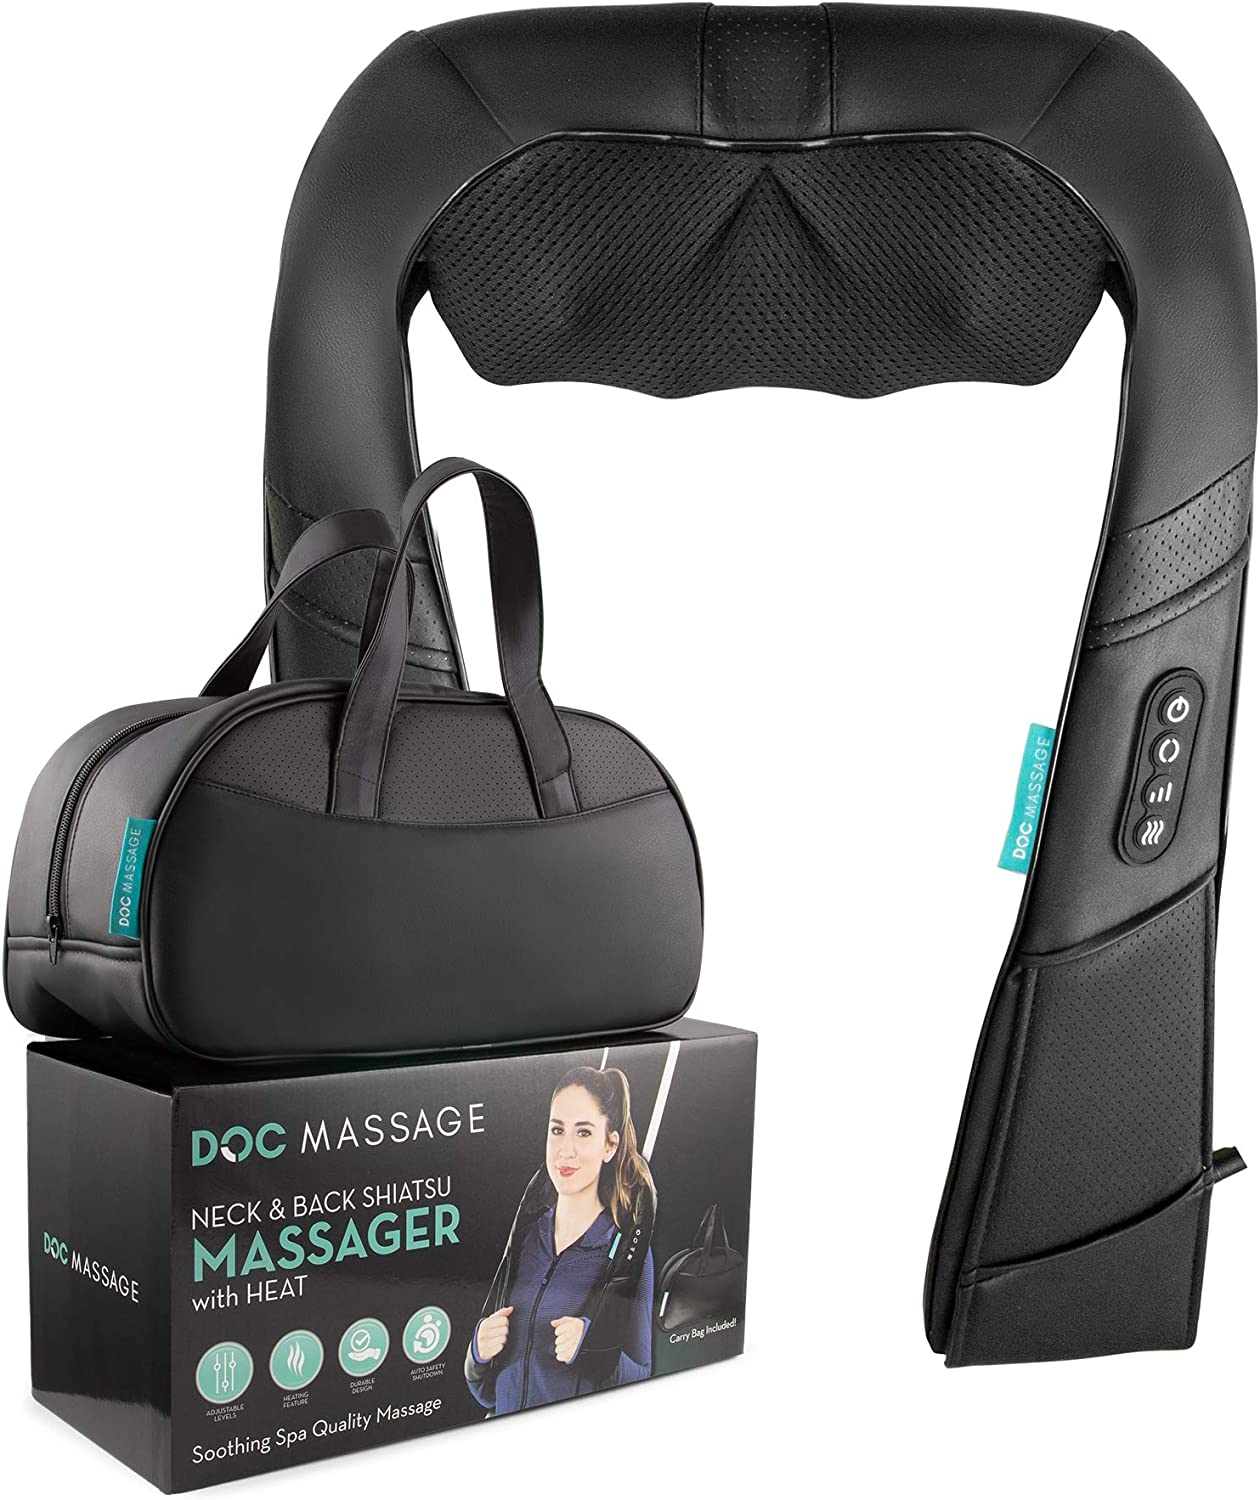 Neck Massager with Heat Stop Annoying Neck Pain Massage Away Stiffness, Tension in Your Neck, Back, Shoulders, and Legs Do It in Style, Do It with DOCMASSAGE